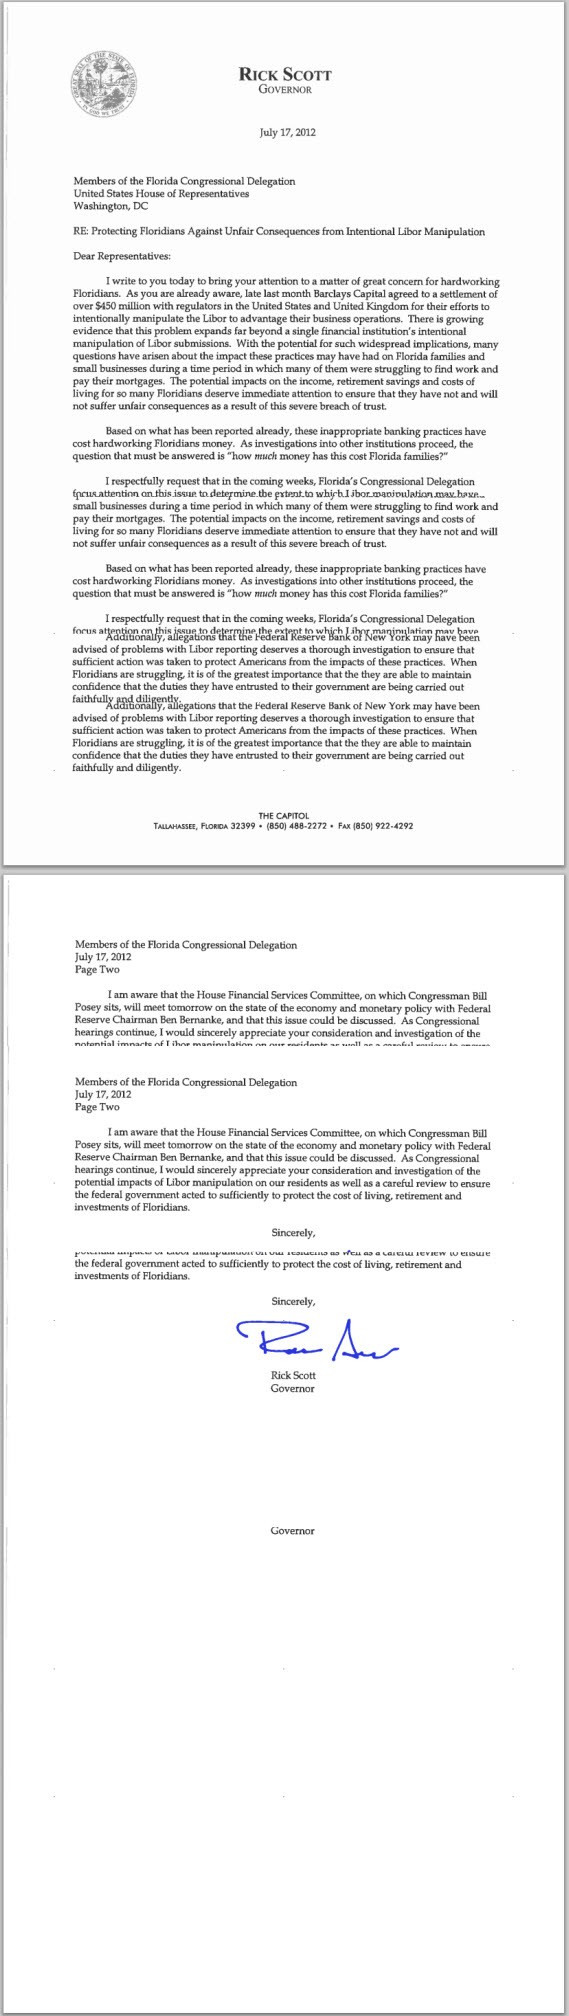 Open Letter of Governor Rick Scott to Florida Congress on Libor Rate Manipulation